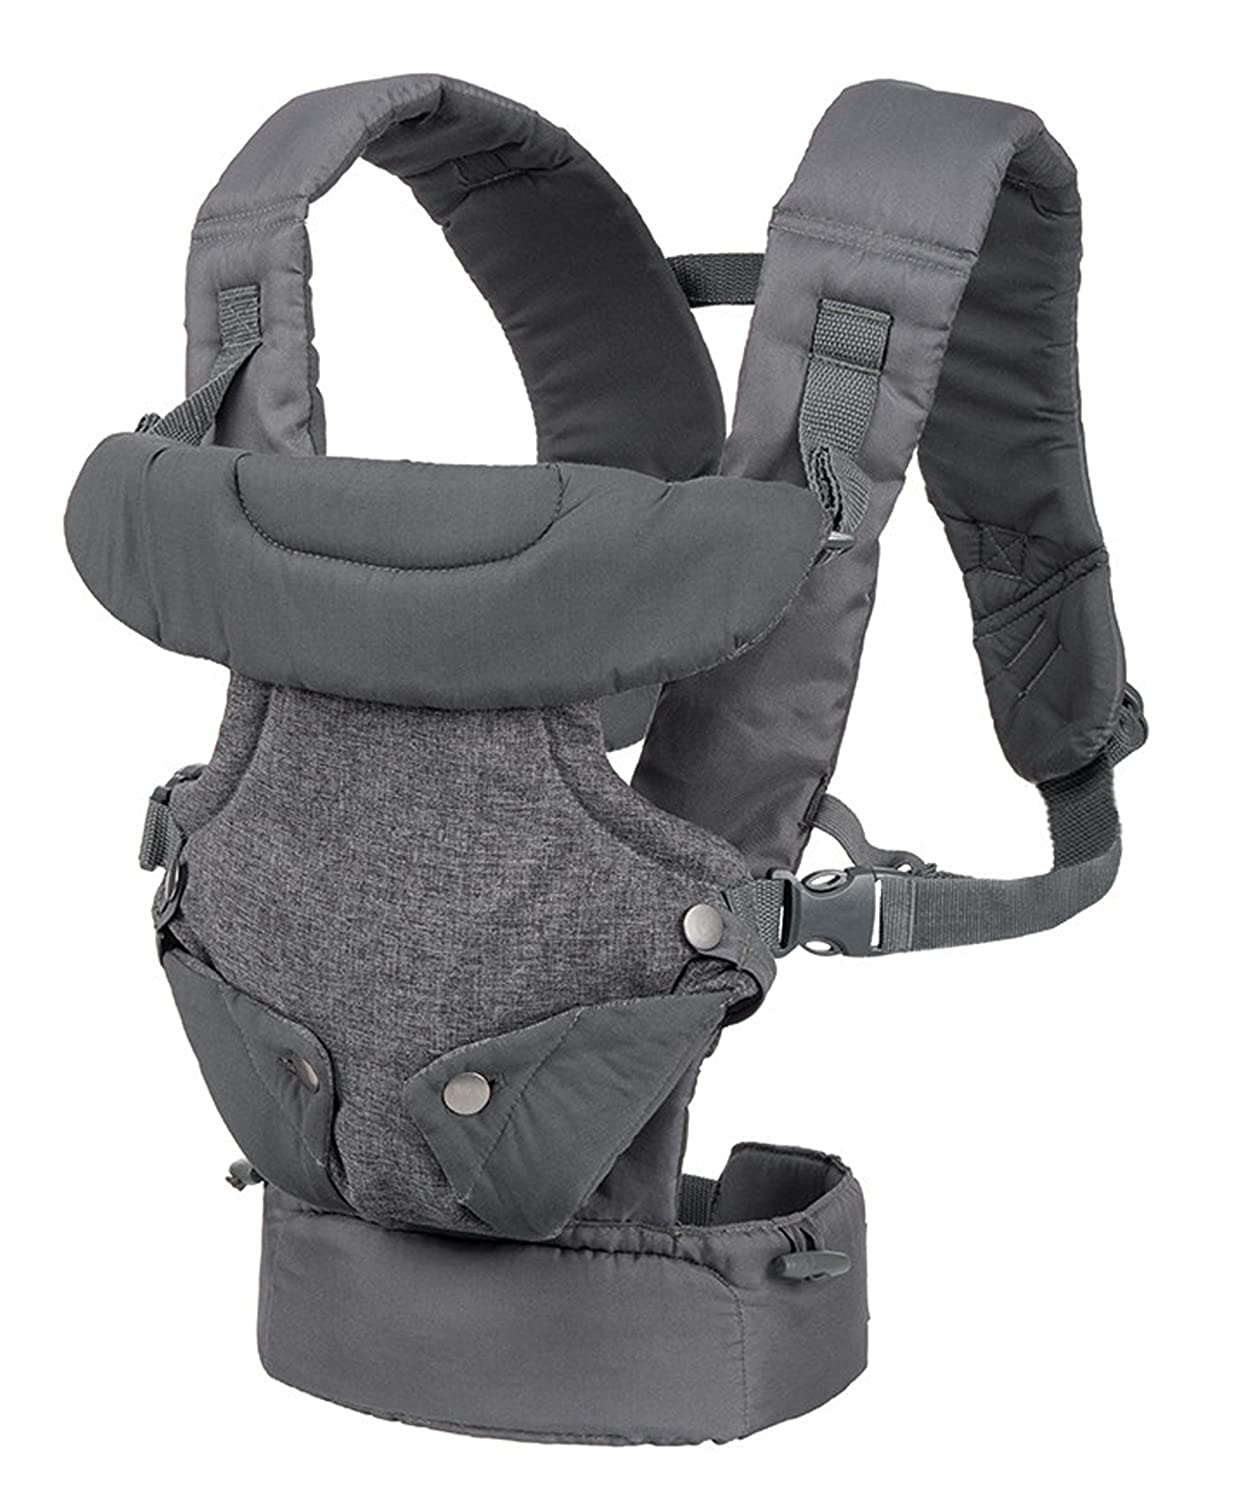 Infantino Flip Advanced - Convertible carrier 005204